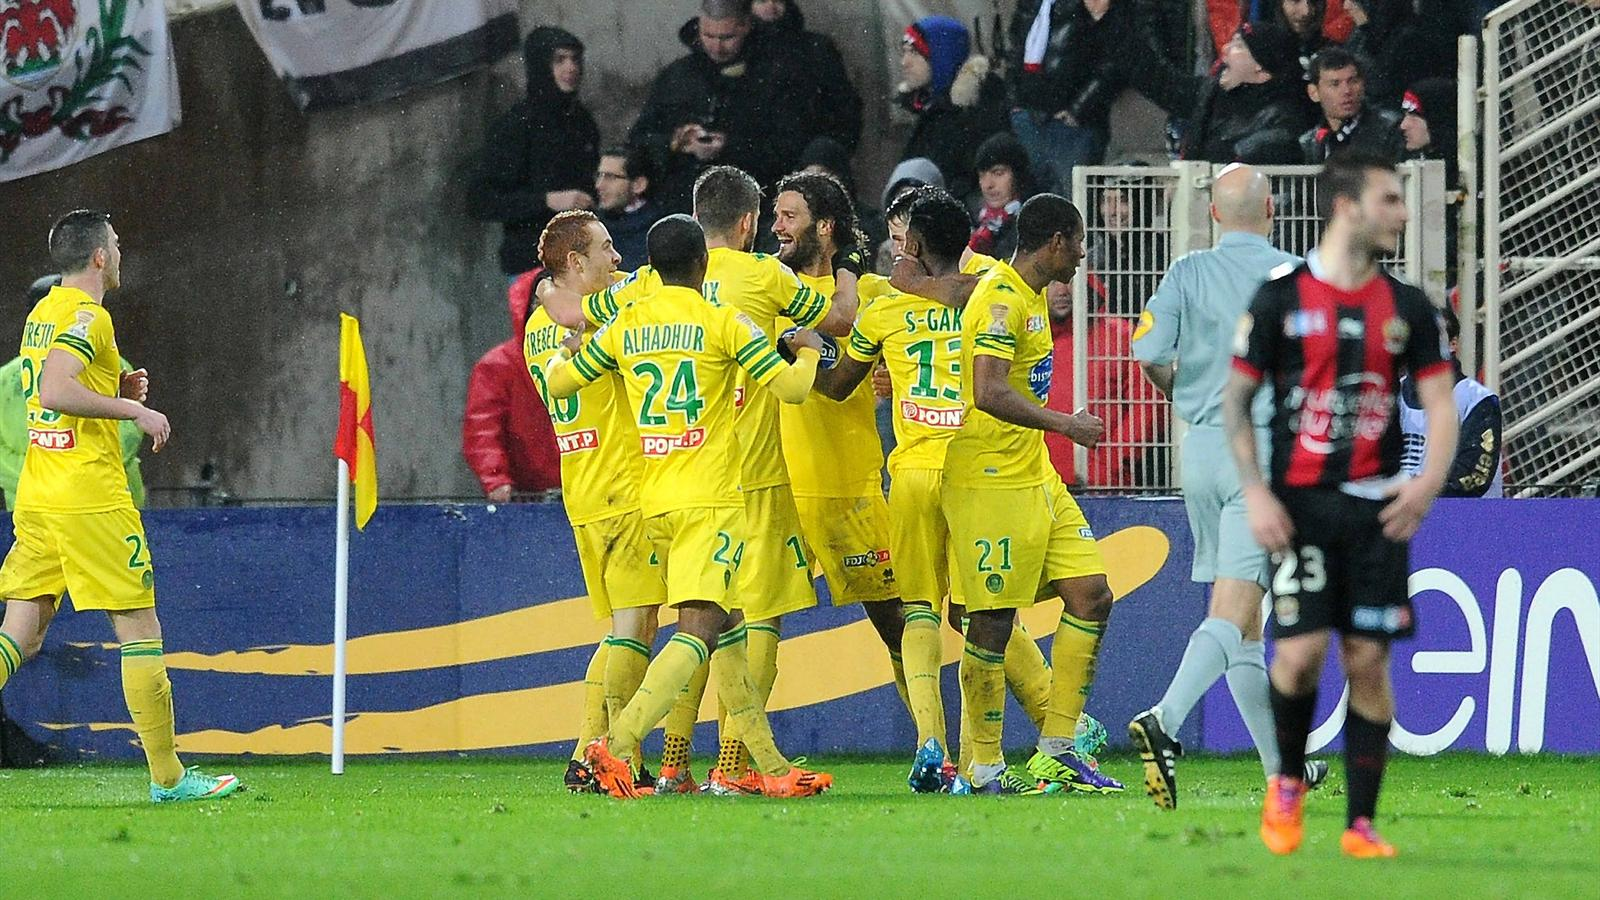 Coupe de la ligue nantes nice 4 3 les canaris en demi finale coupe de la ligue 2013 - Coupe de la ligue 2013 14 ...